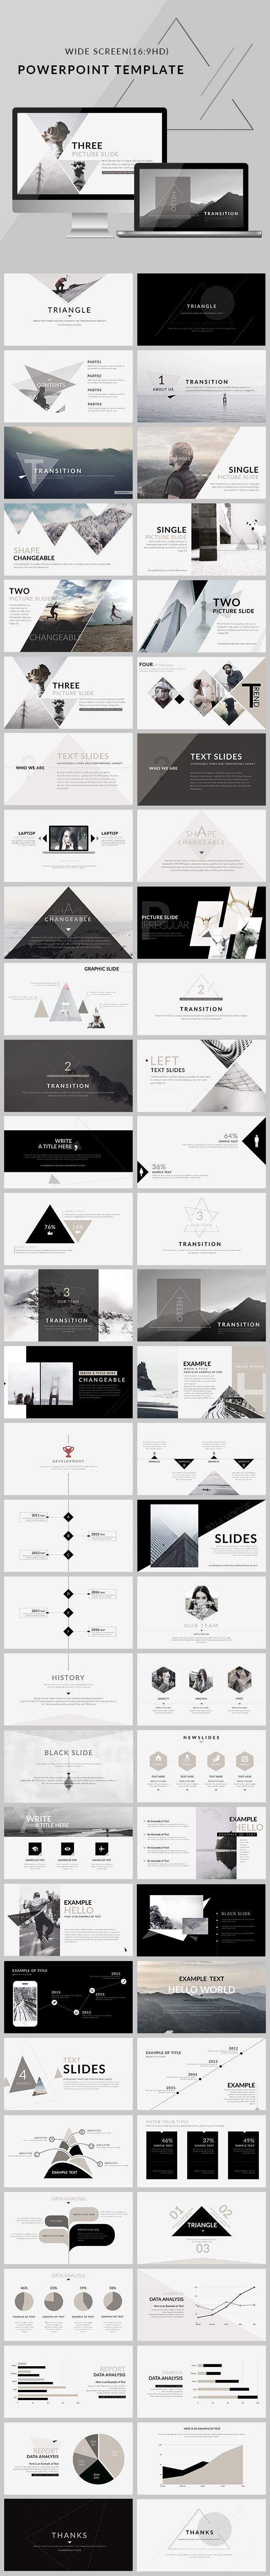 Triangle - Clean trend PowerPoint presentation - Creative PowerPoint Templates